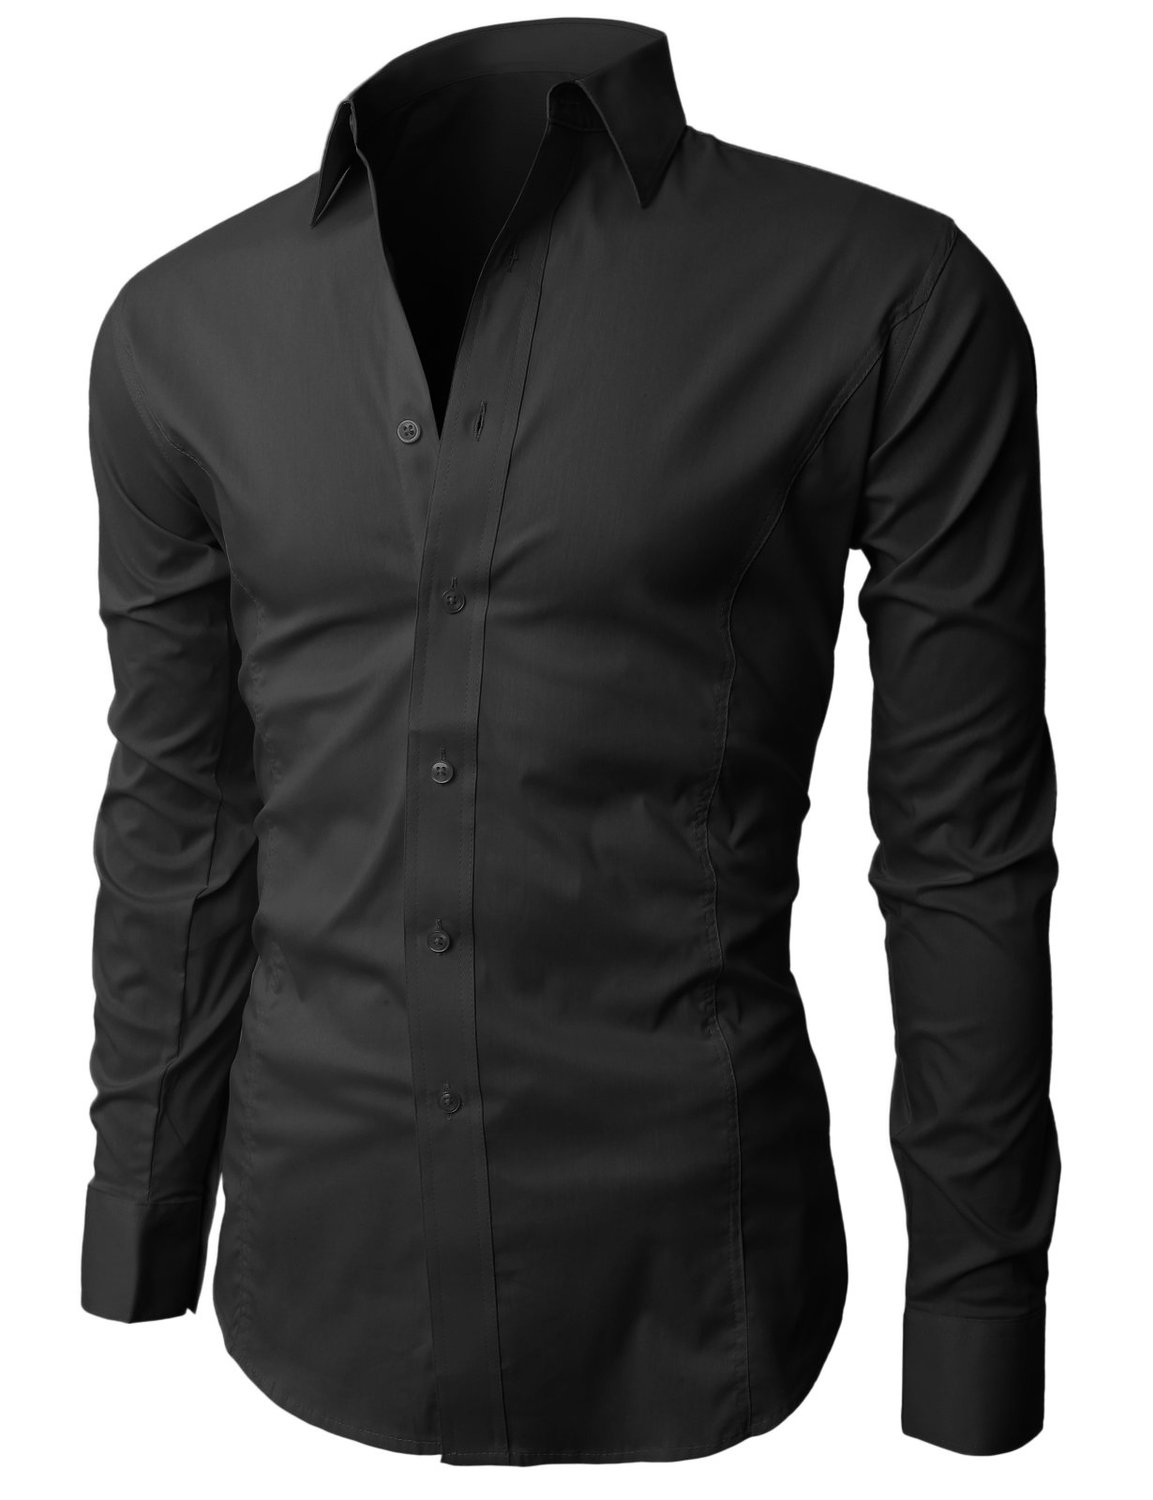 H2H Mens Wrinkle Free Slim Fit Dress Shirts with Solid Long Sleeve at Amazon Men's Clothing store